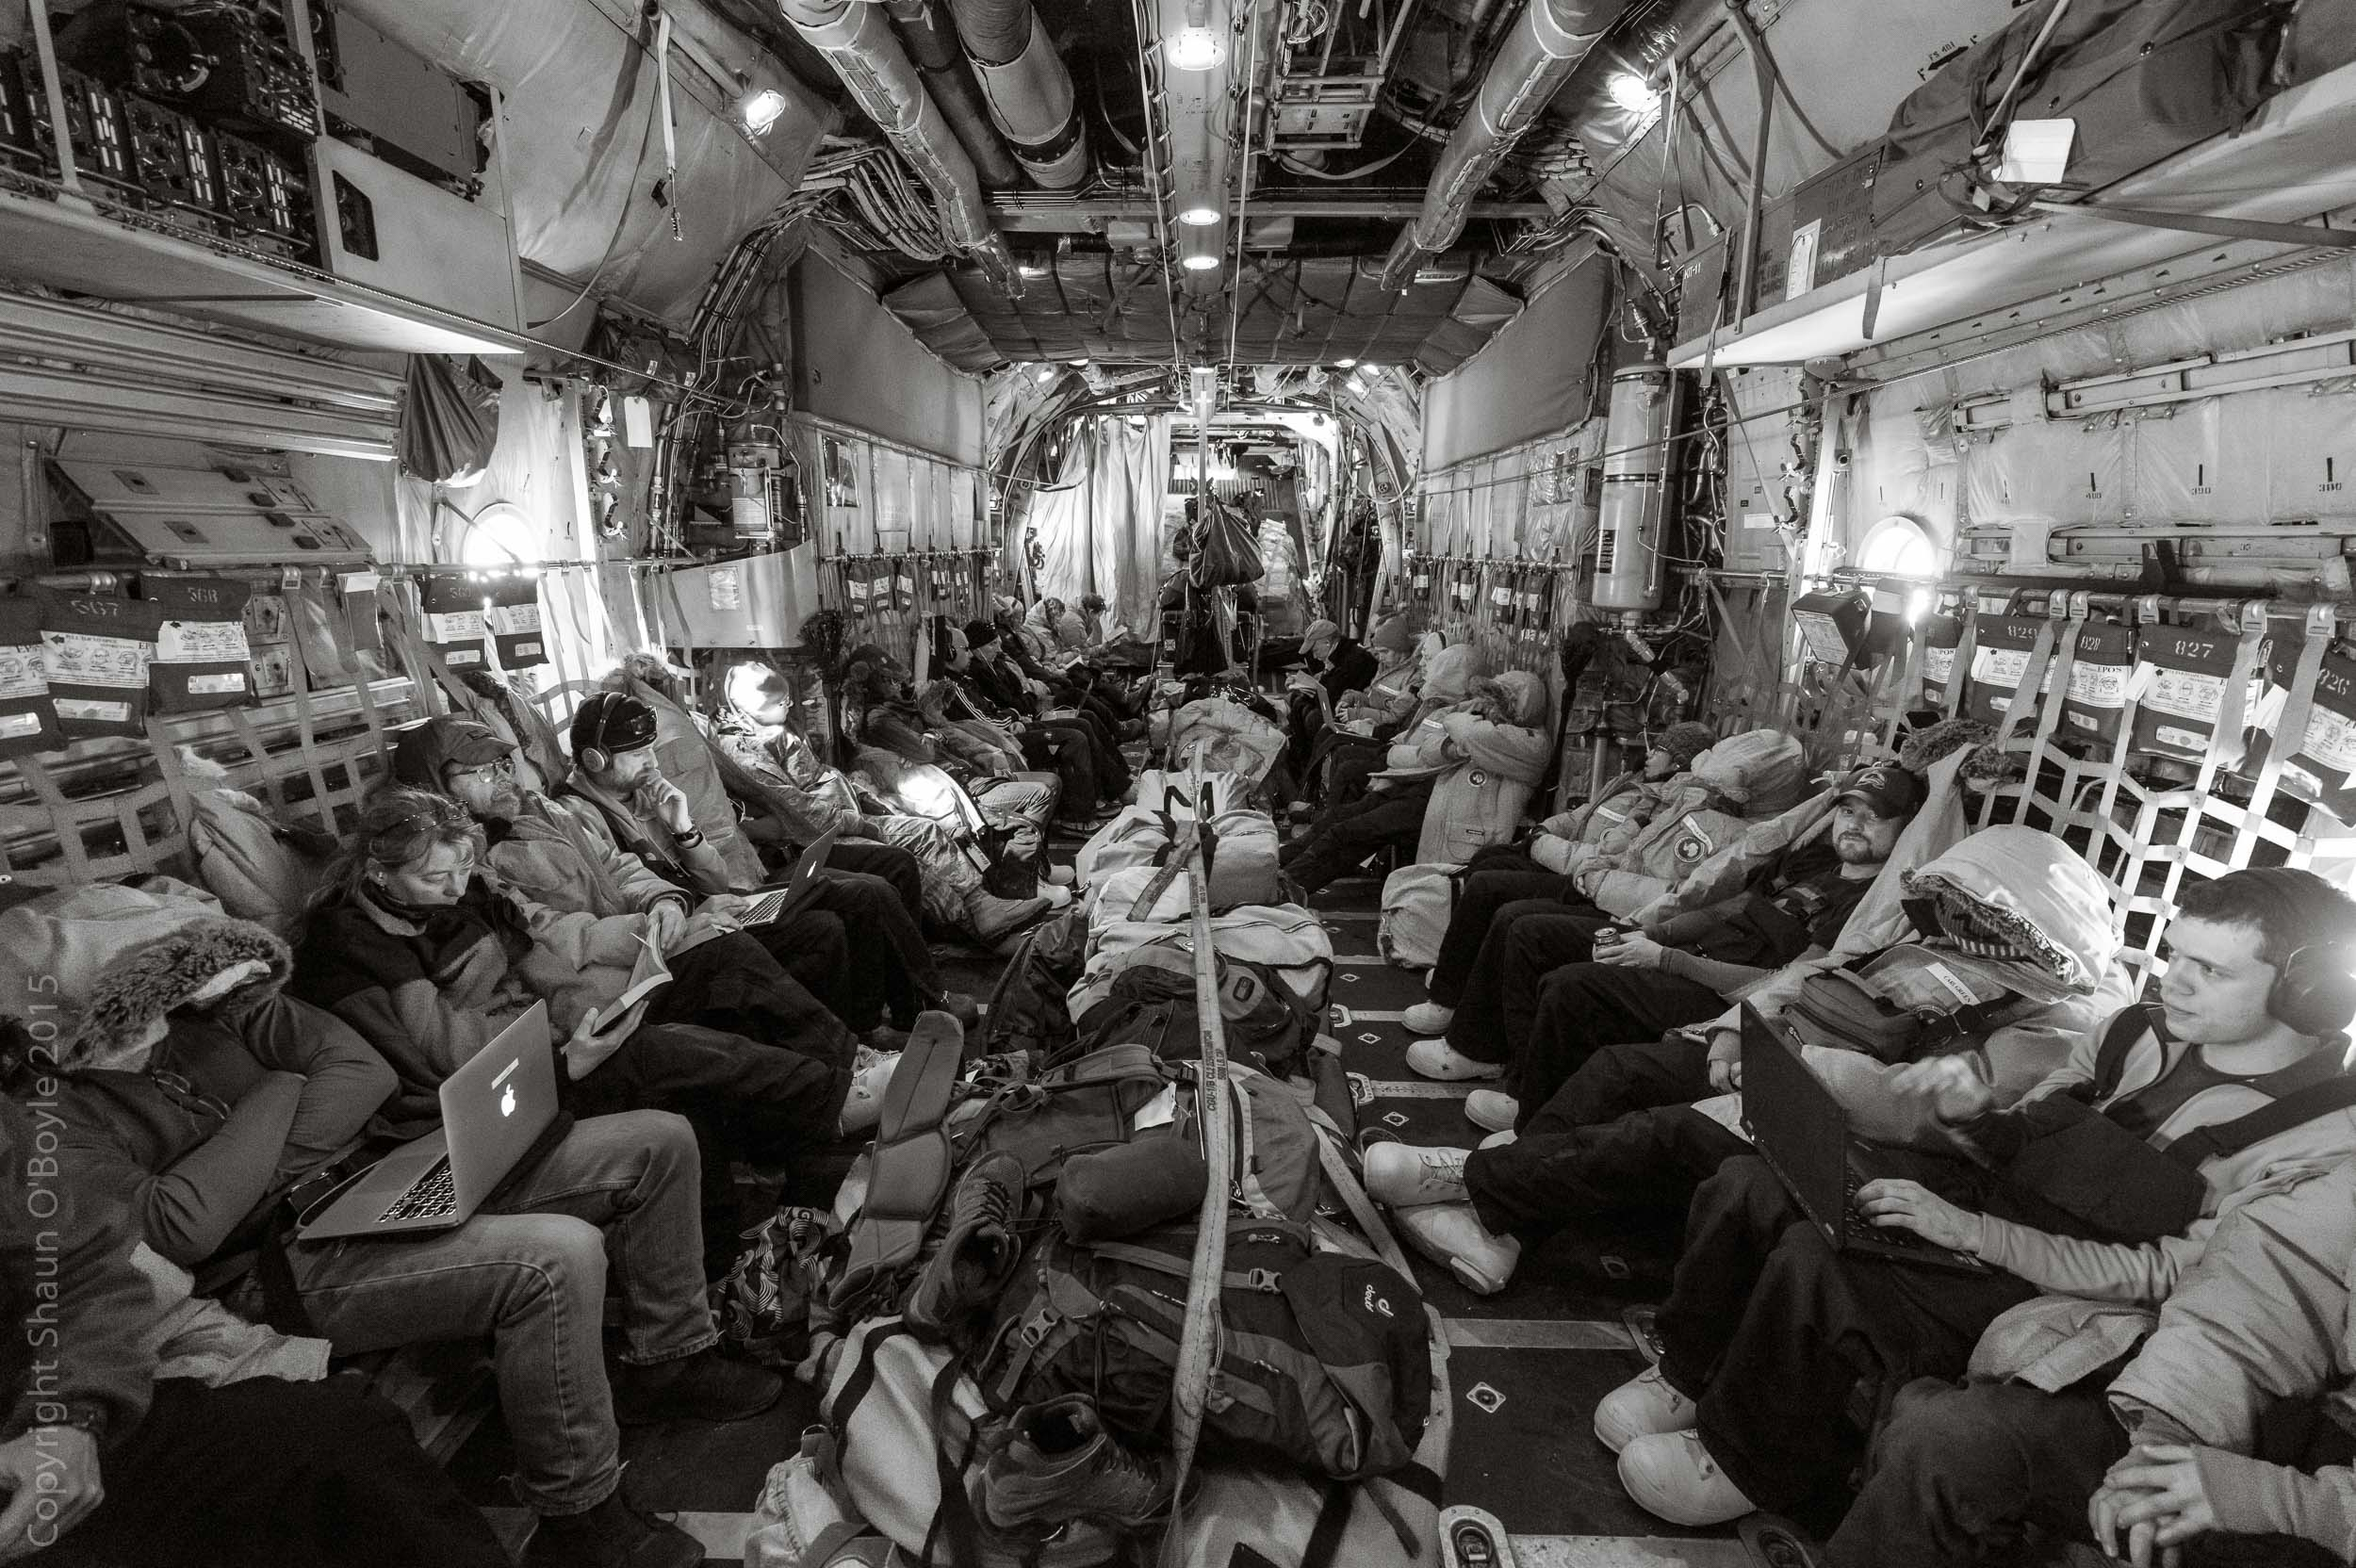 7 hour flight from McMurdo to Christchurch New Zealand in the LC-130